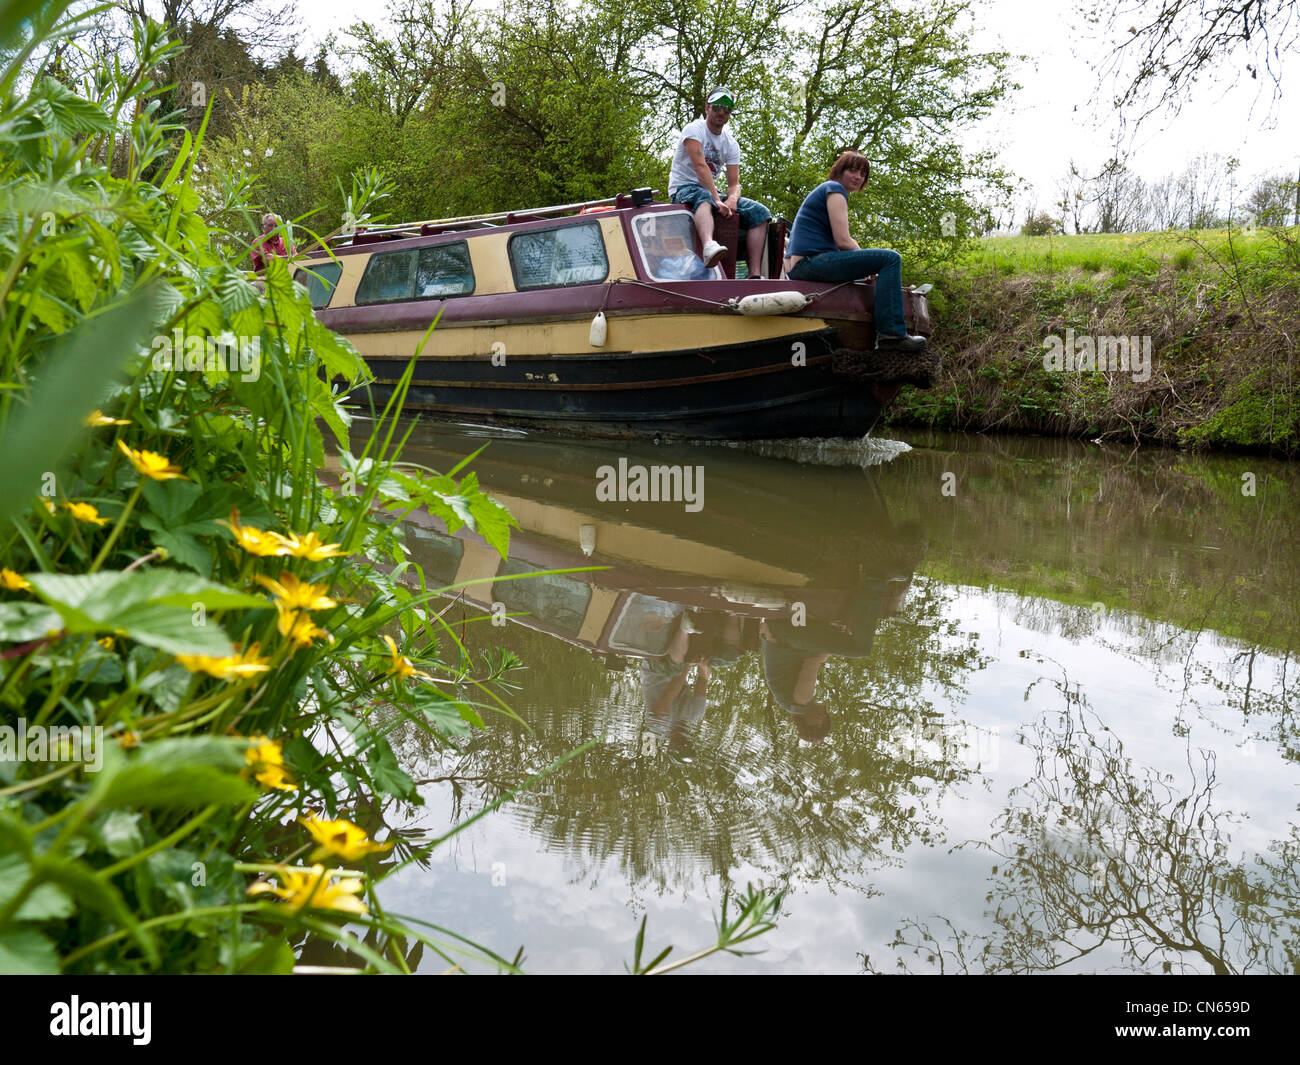 Narrow boat traveling on the Oxford canal, England, UK - Stock Image